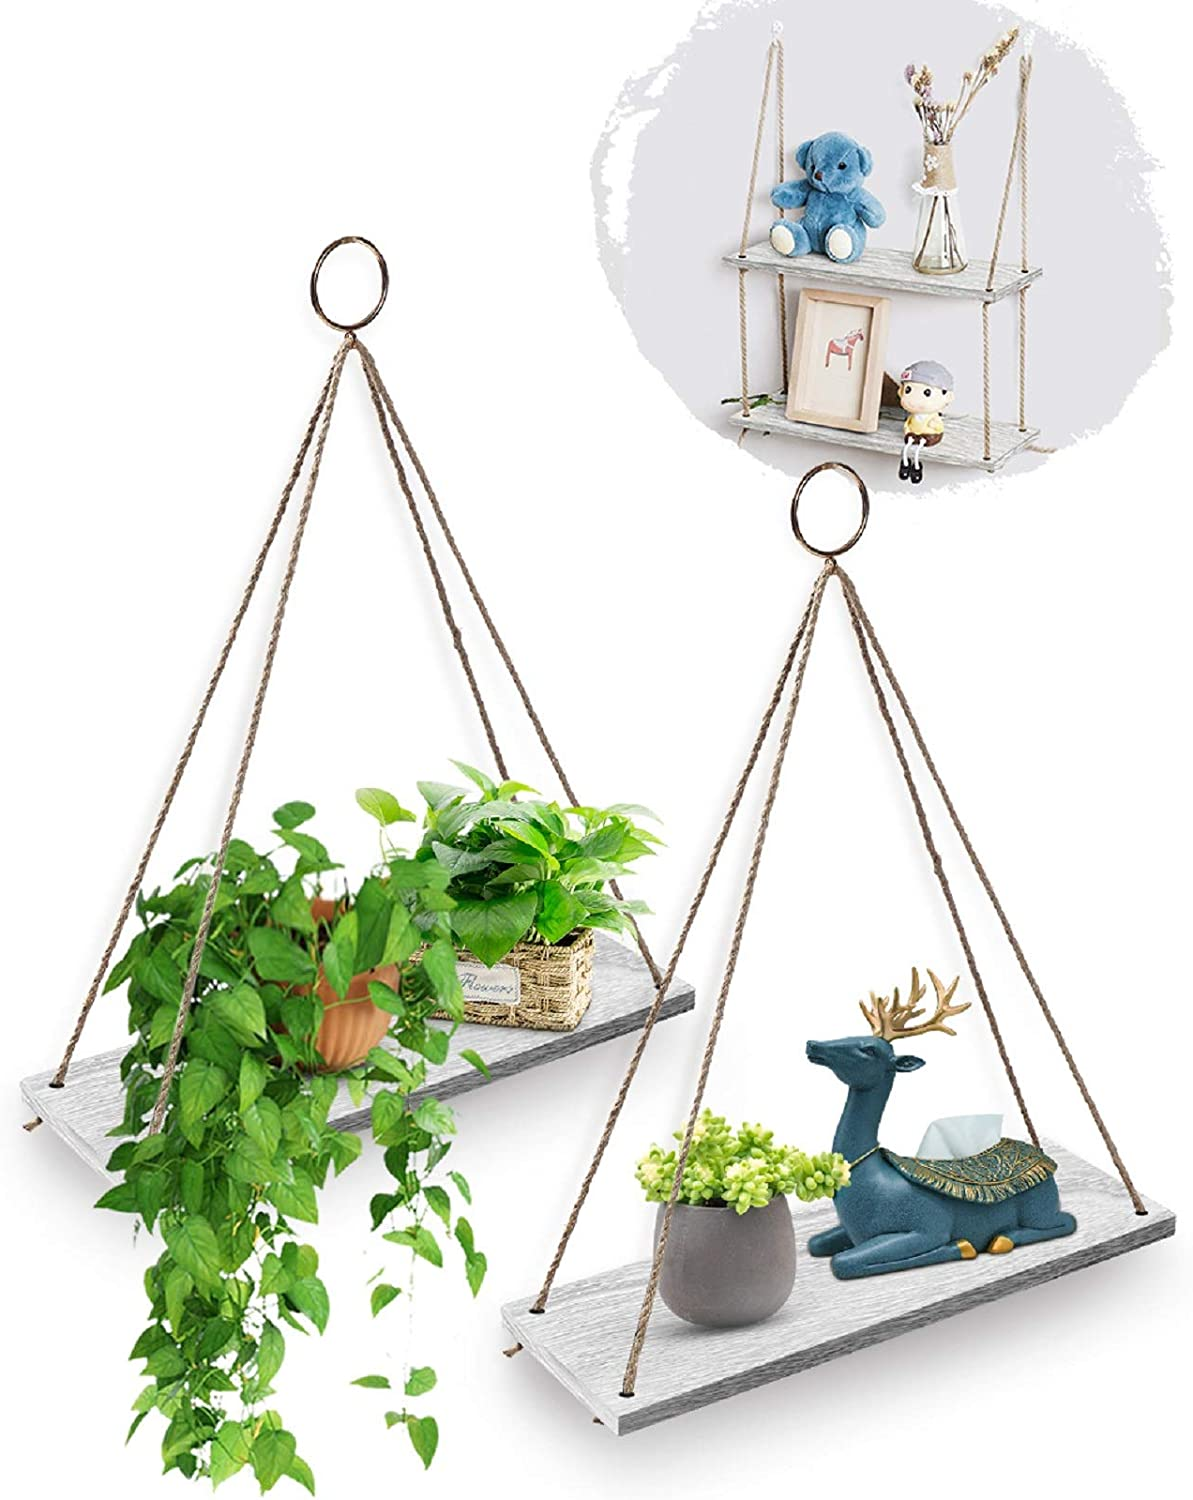 AGSIVO Hanging Shelves for Wall Hanging Floating Shelves with Rope for Living Room Bedroom Bathroom - Wood Hanging Shelf Storage Decor Wall Shelves, Lightweight and Durable (2PCS White)